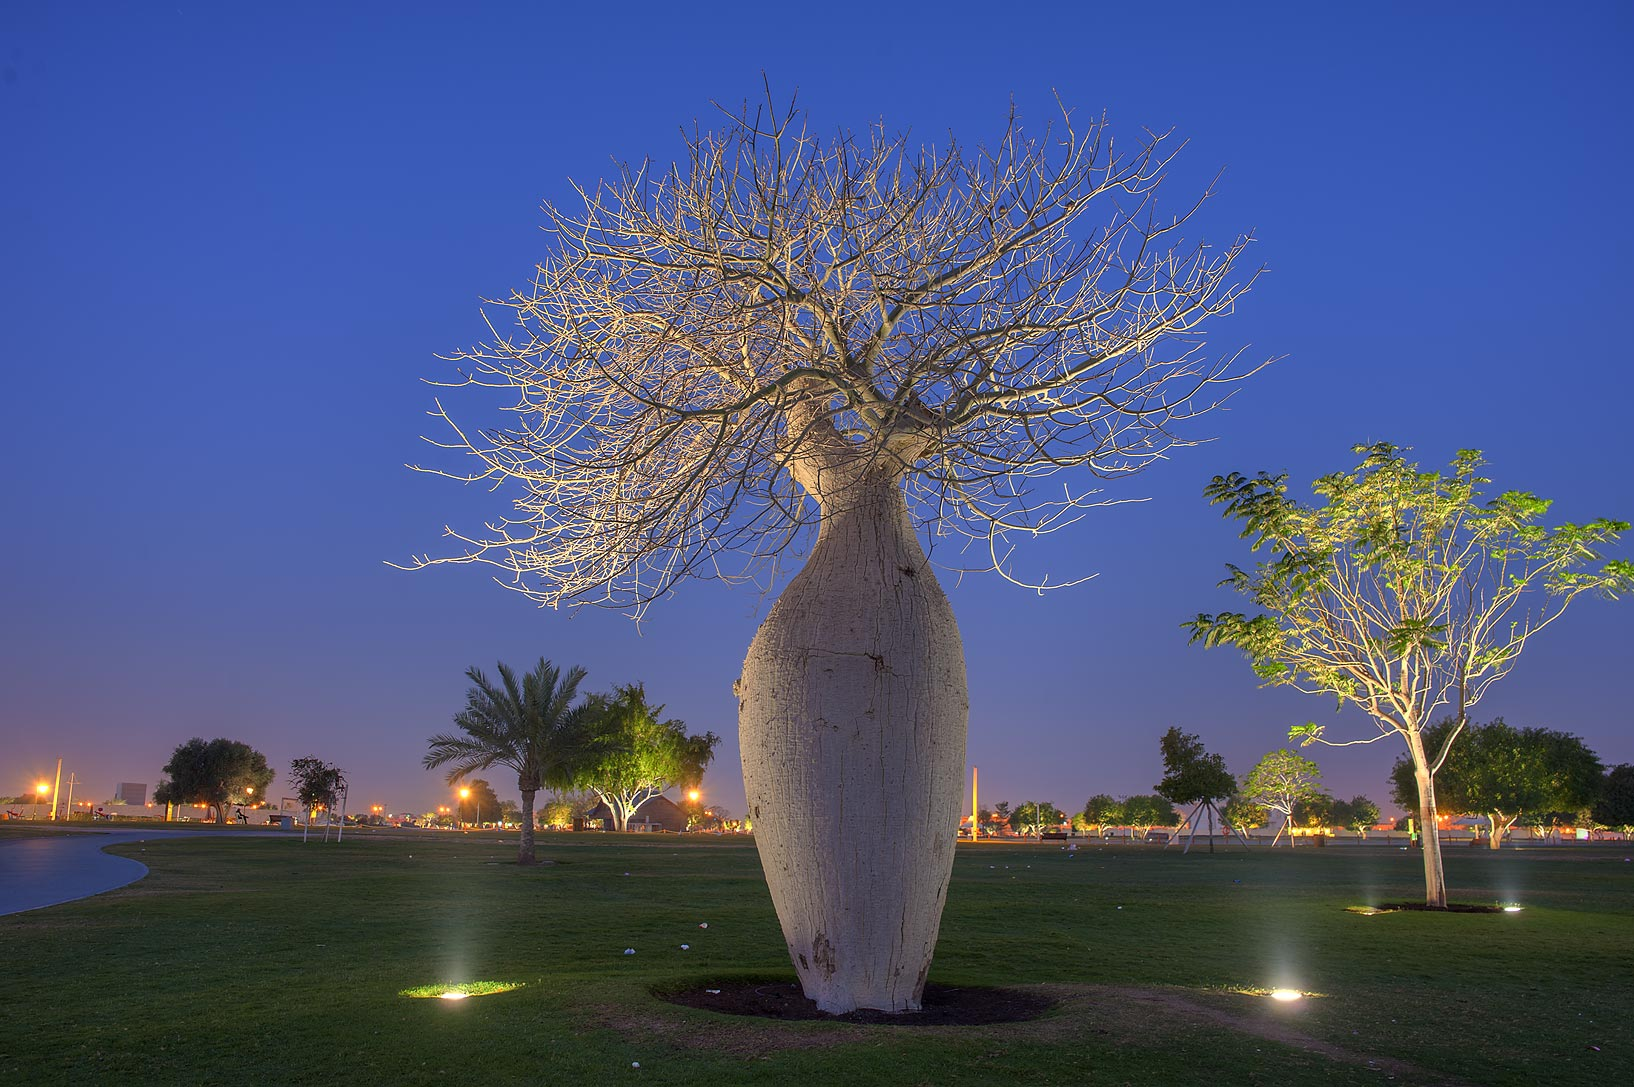 Illuminated Silk floss tree (Chorisia speciosa...speciosa) in Aspire Park. Doha, Qatar